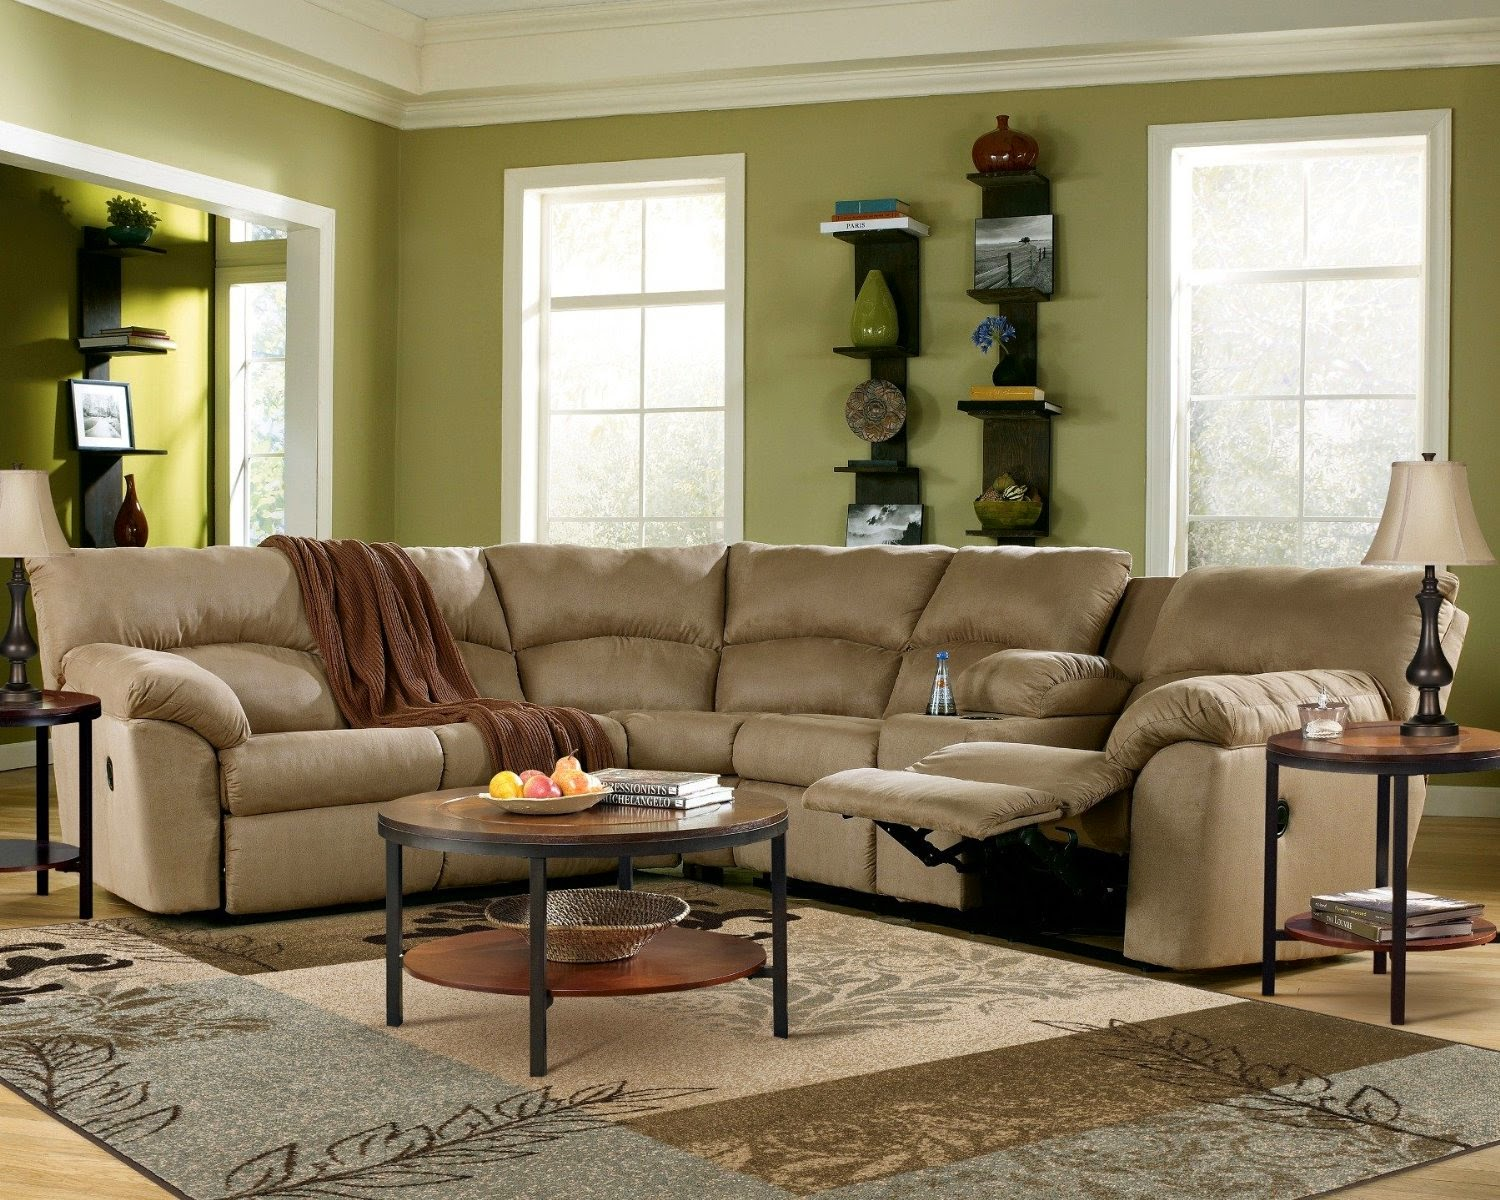 Awesome Sectional Reclining Sofa Sale Curved Reclining Sectional Sofa Gmtry Best Dining Table And Chair Ideas Images Gmtryco